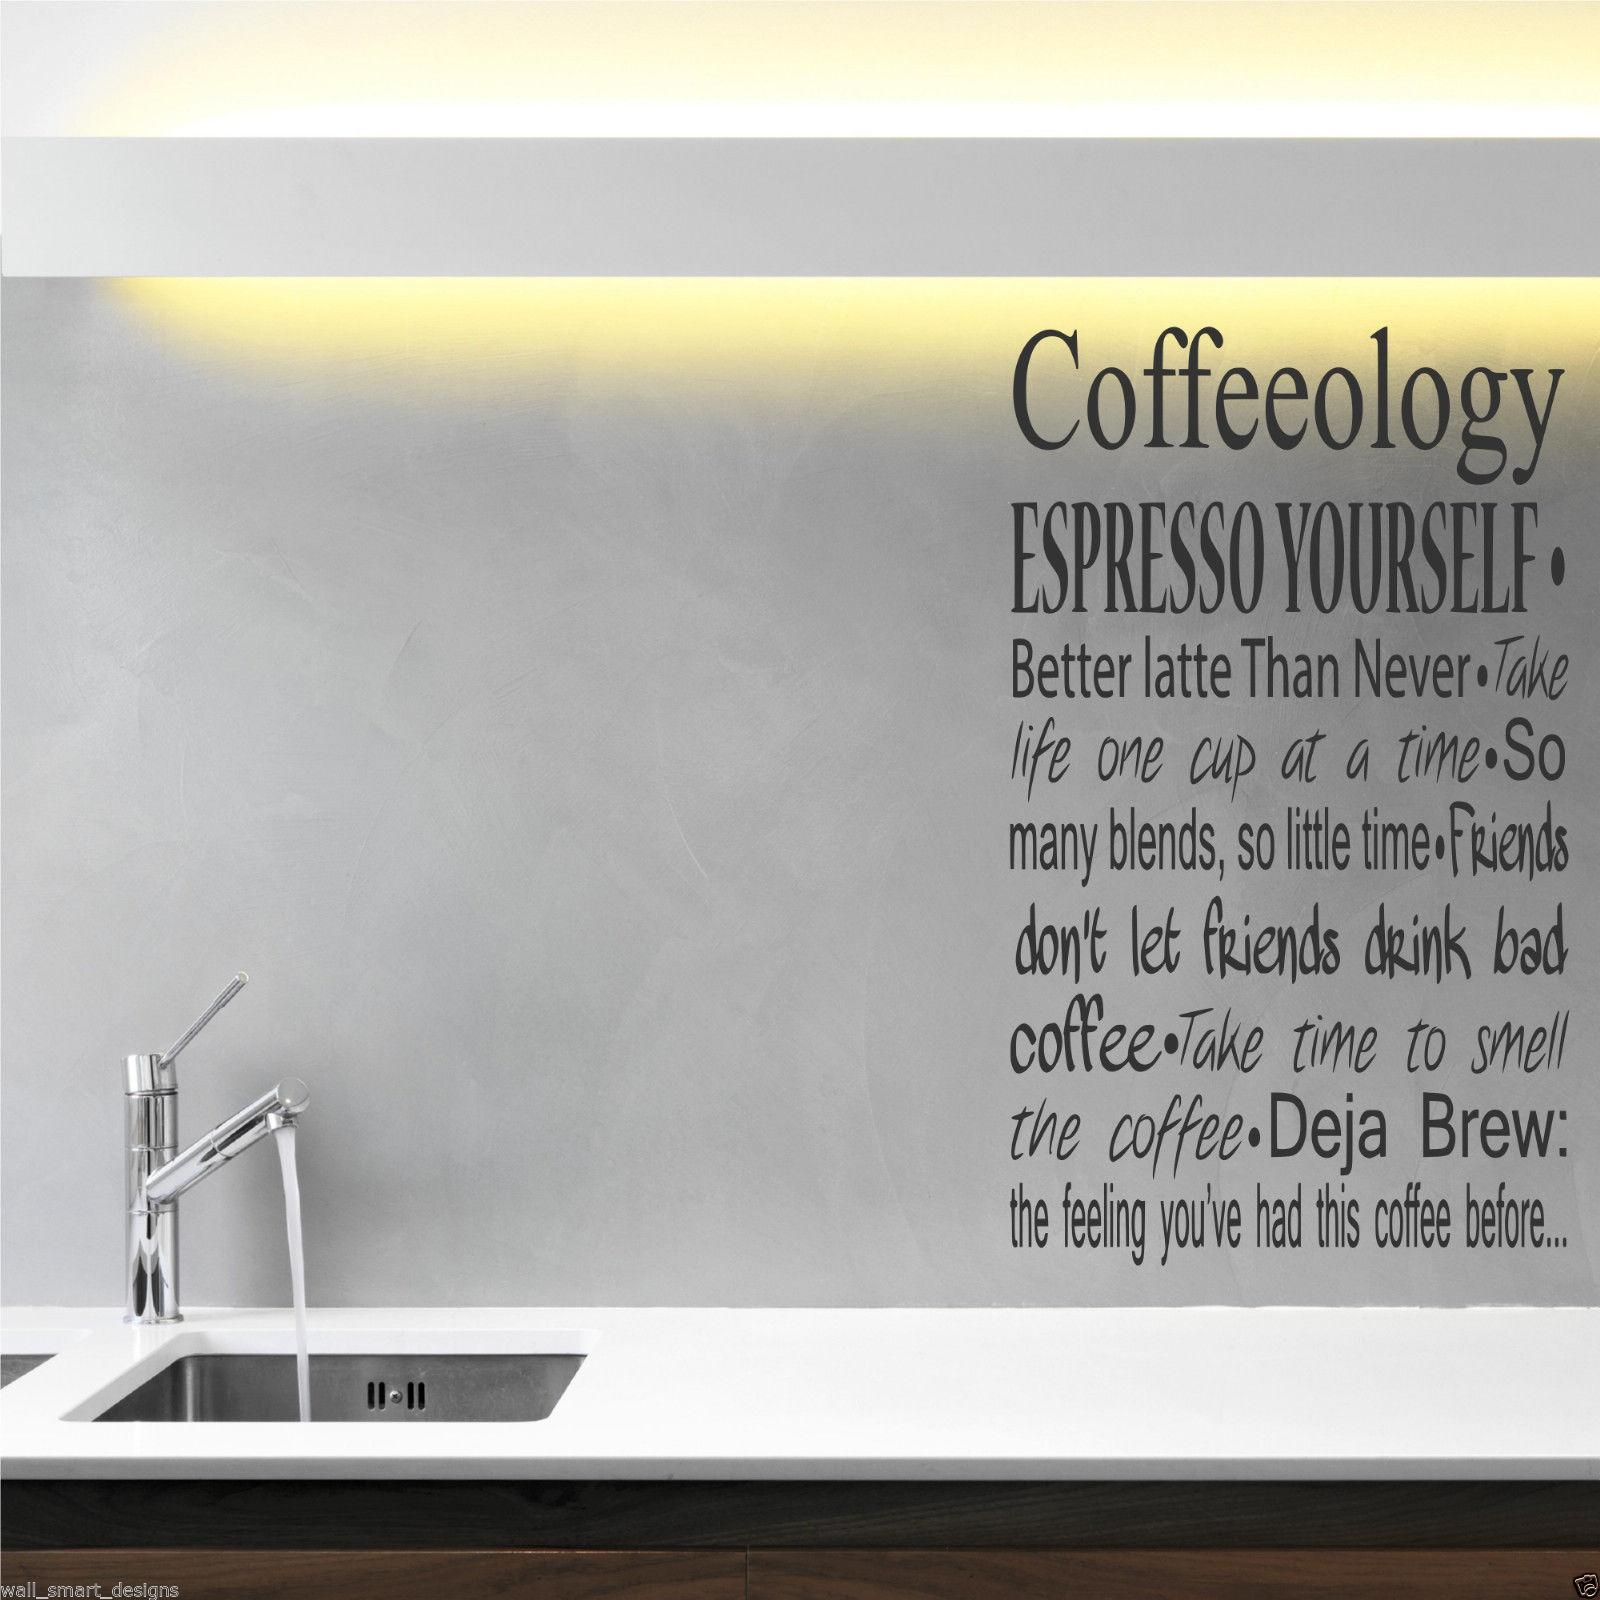 20 Best Collection of Cafe Latte Kitchen Wall Art